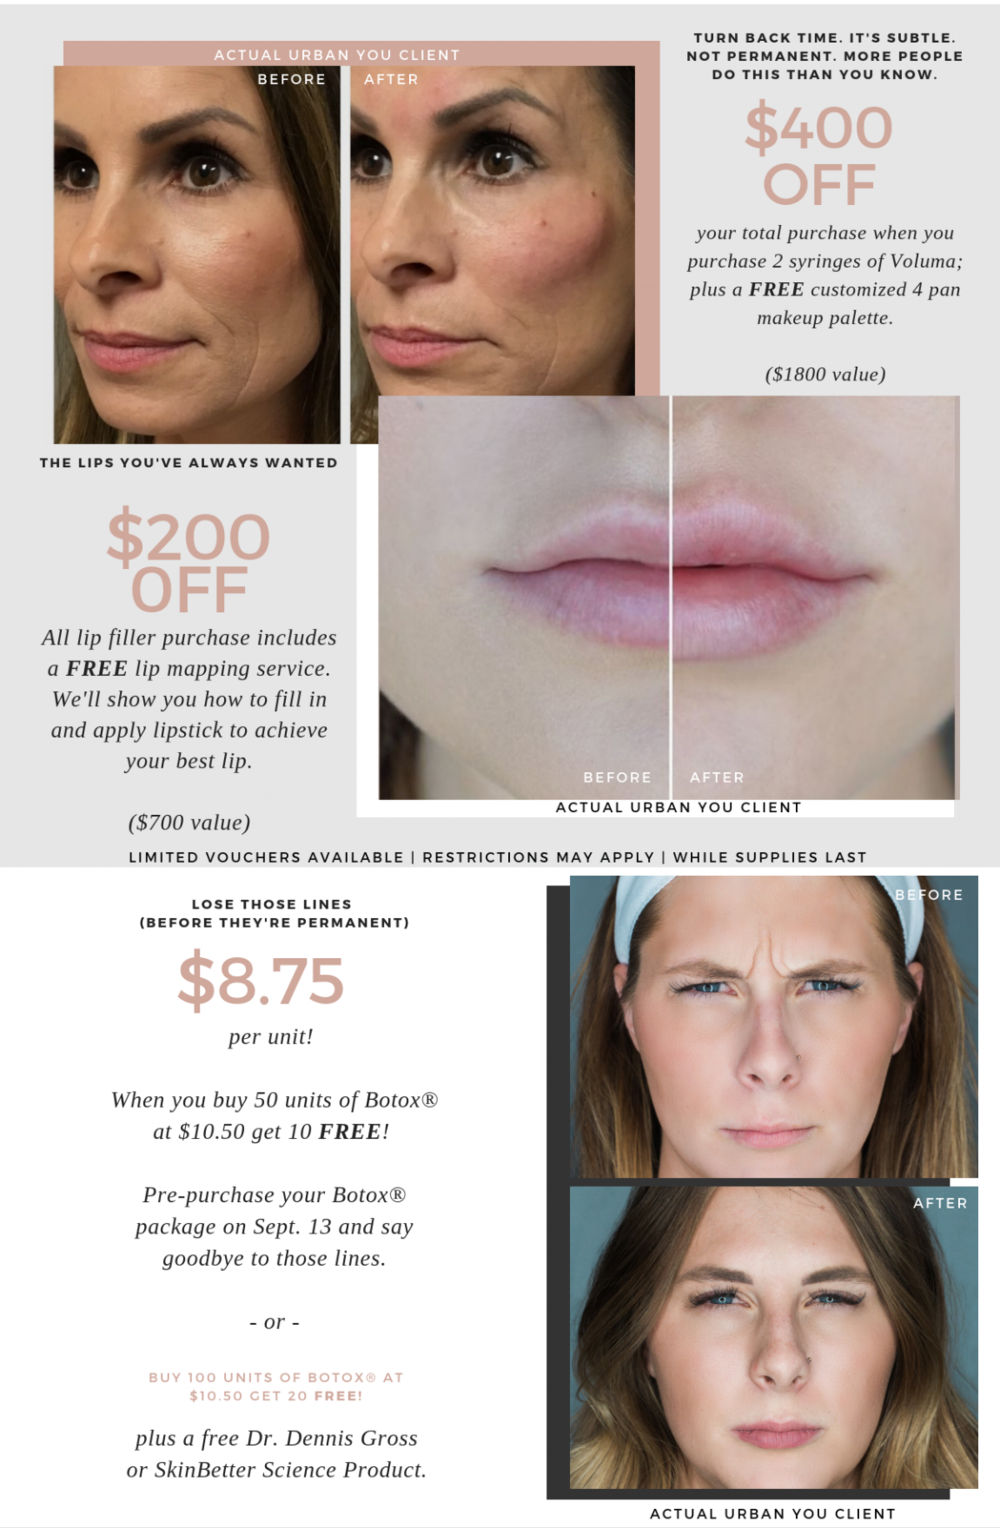 Flawless Fall - Injectables